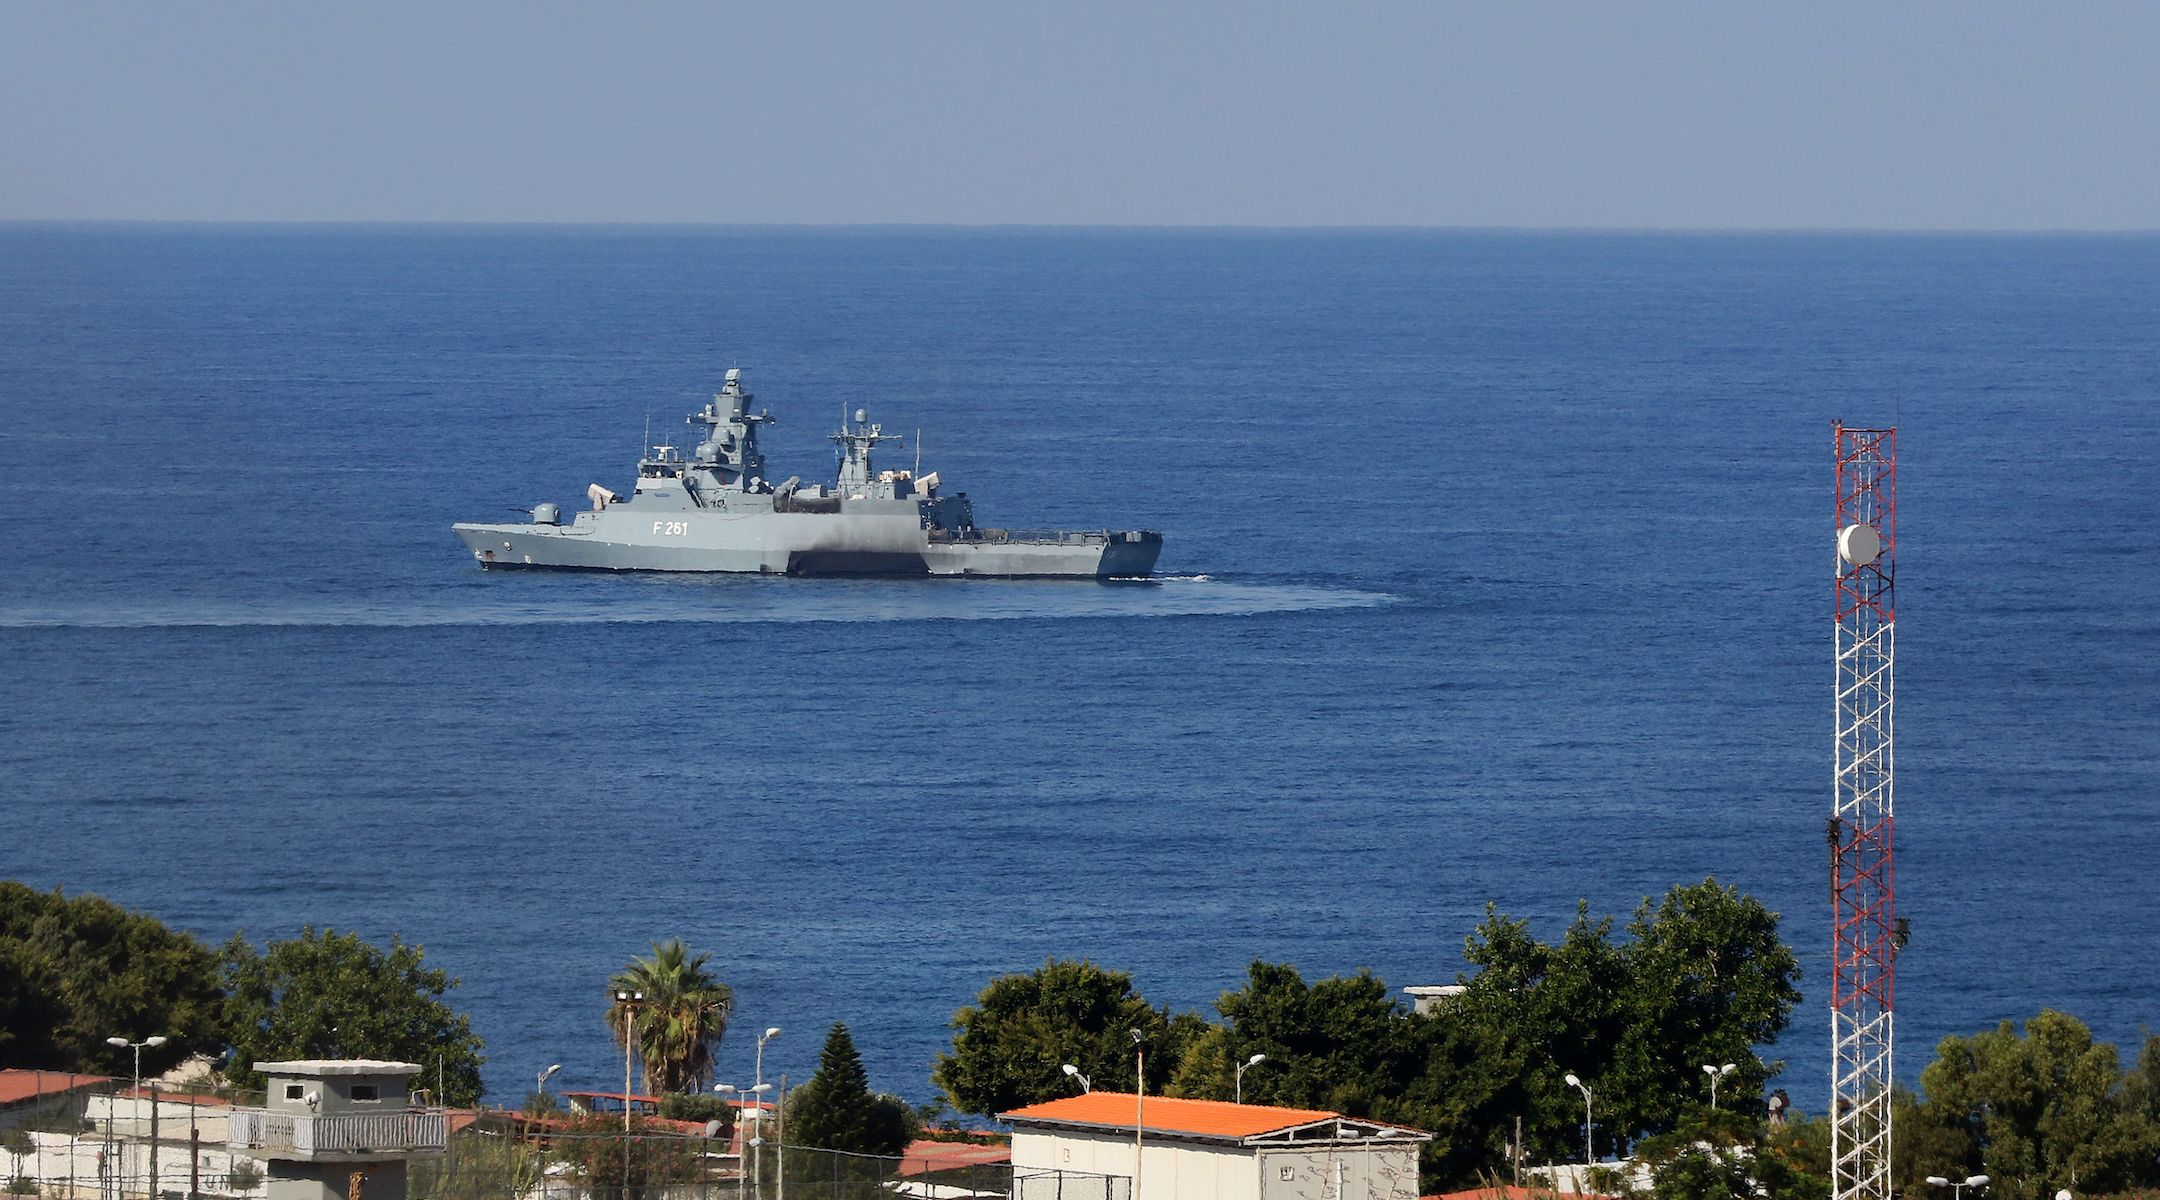 A view over some rooftops to the open sea and a grey military-looking vessel